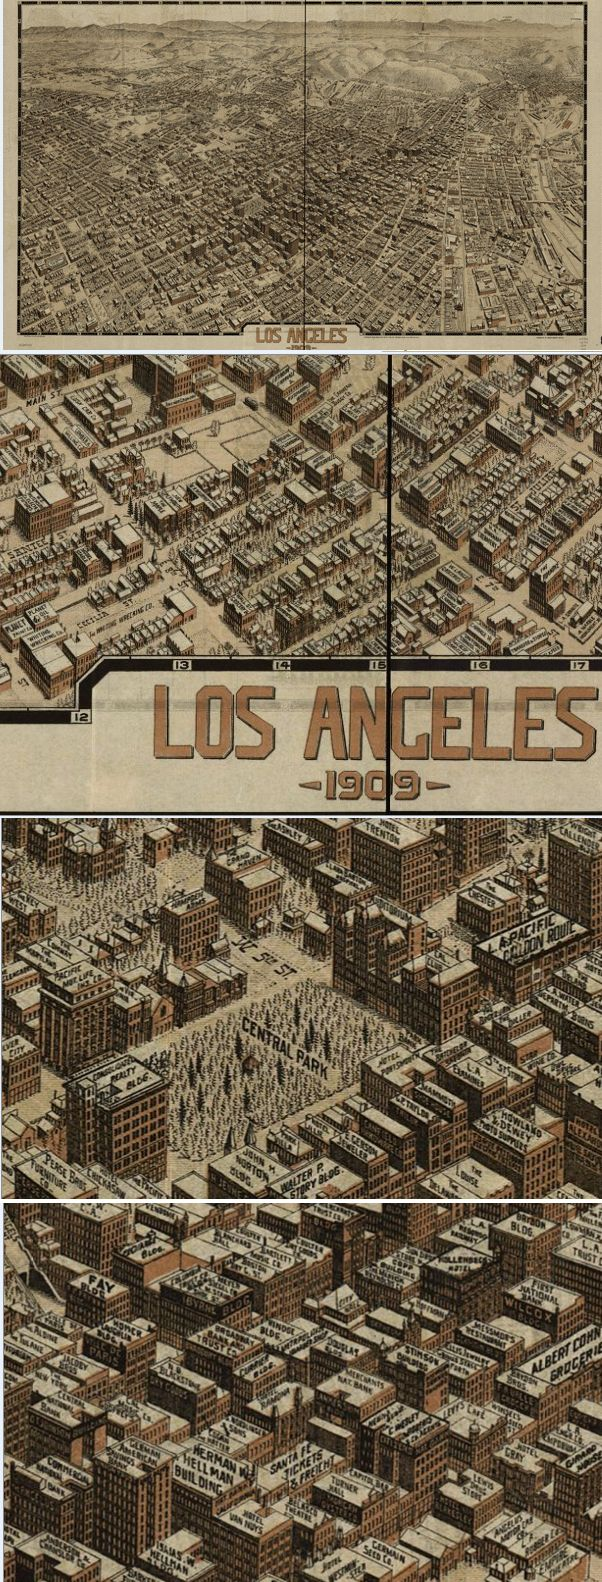 Best Antique And Vintage Wall Maps Images On Pinterest - Vintage los angeles map poster